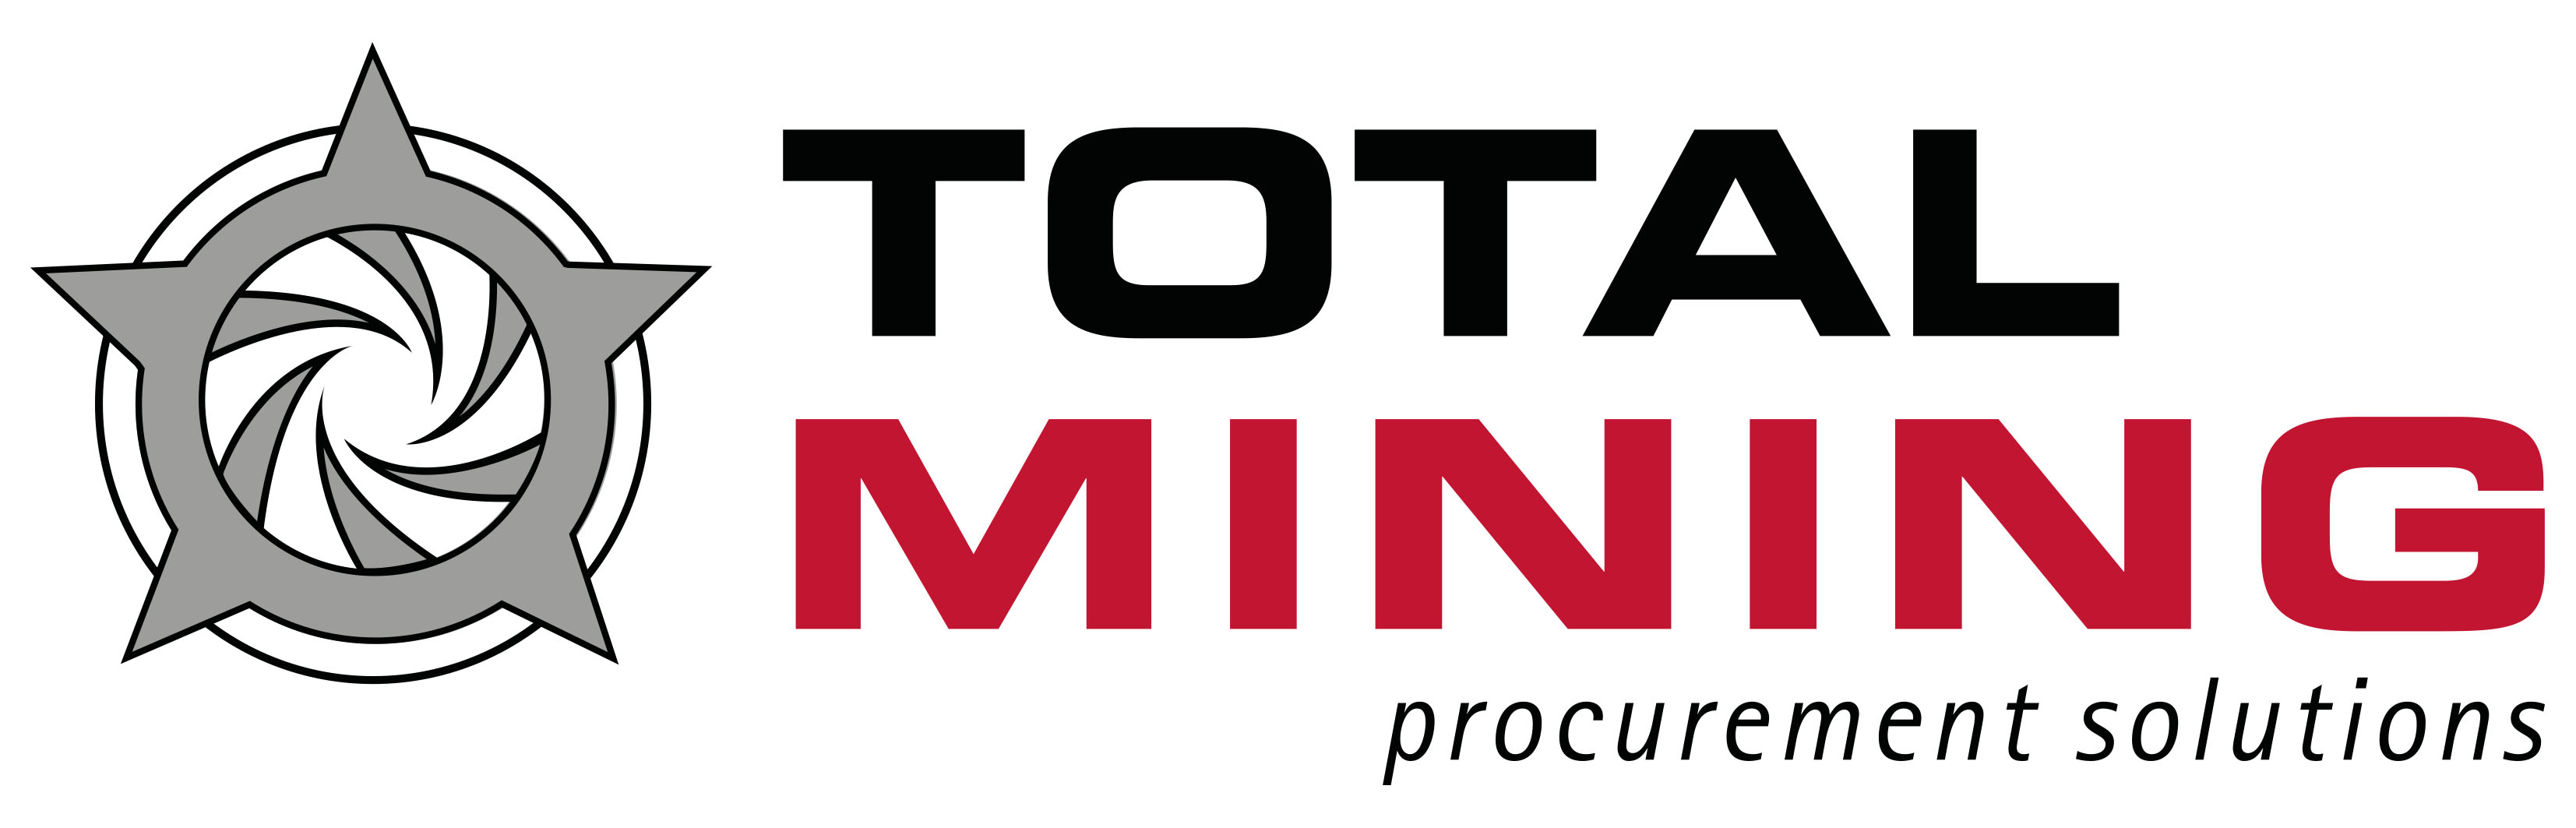 Total-Mining-Solutions